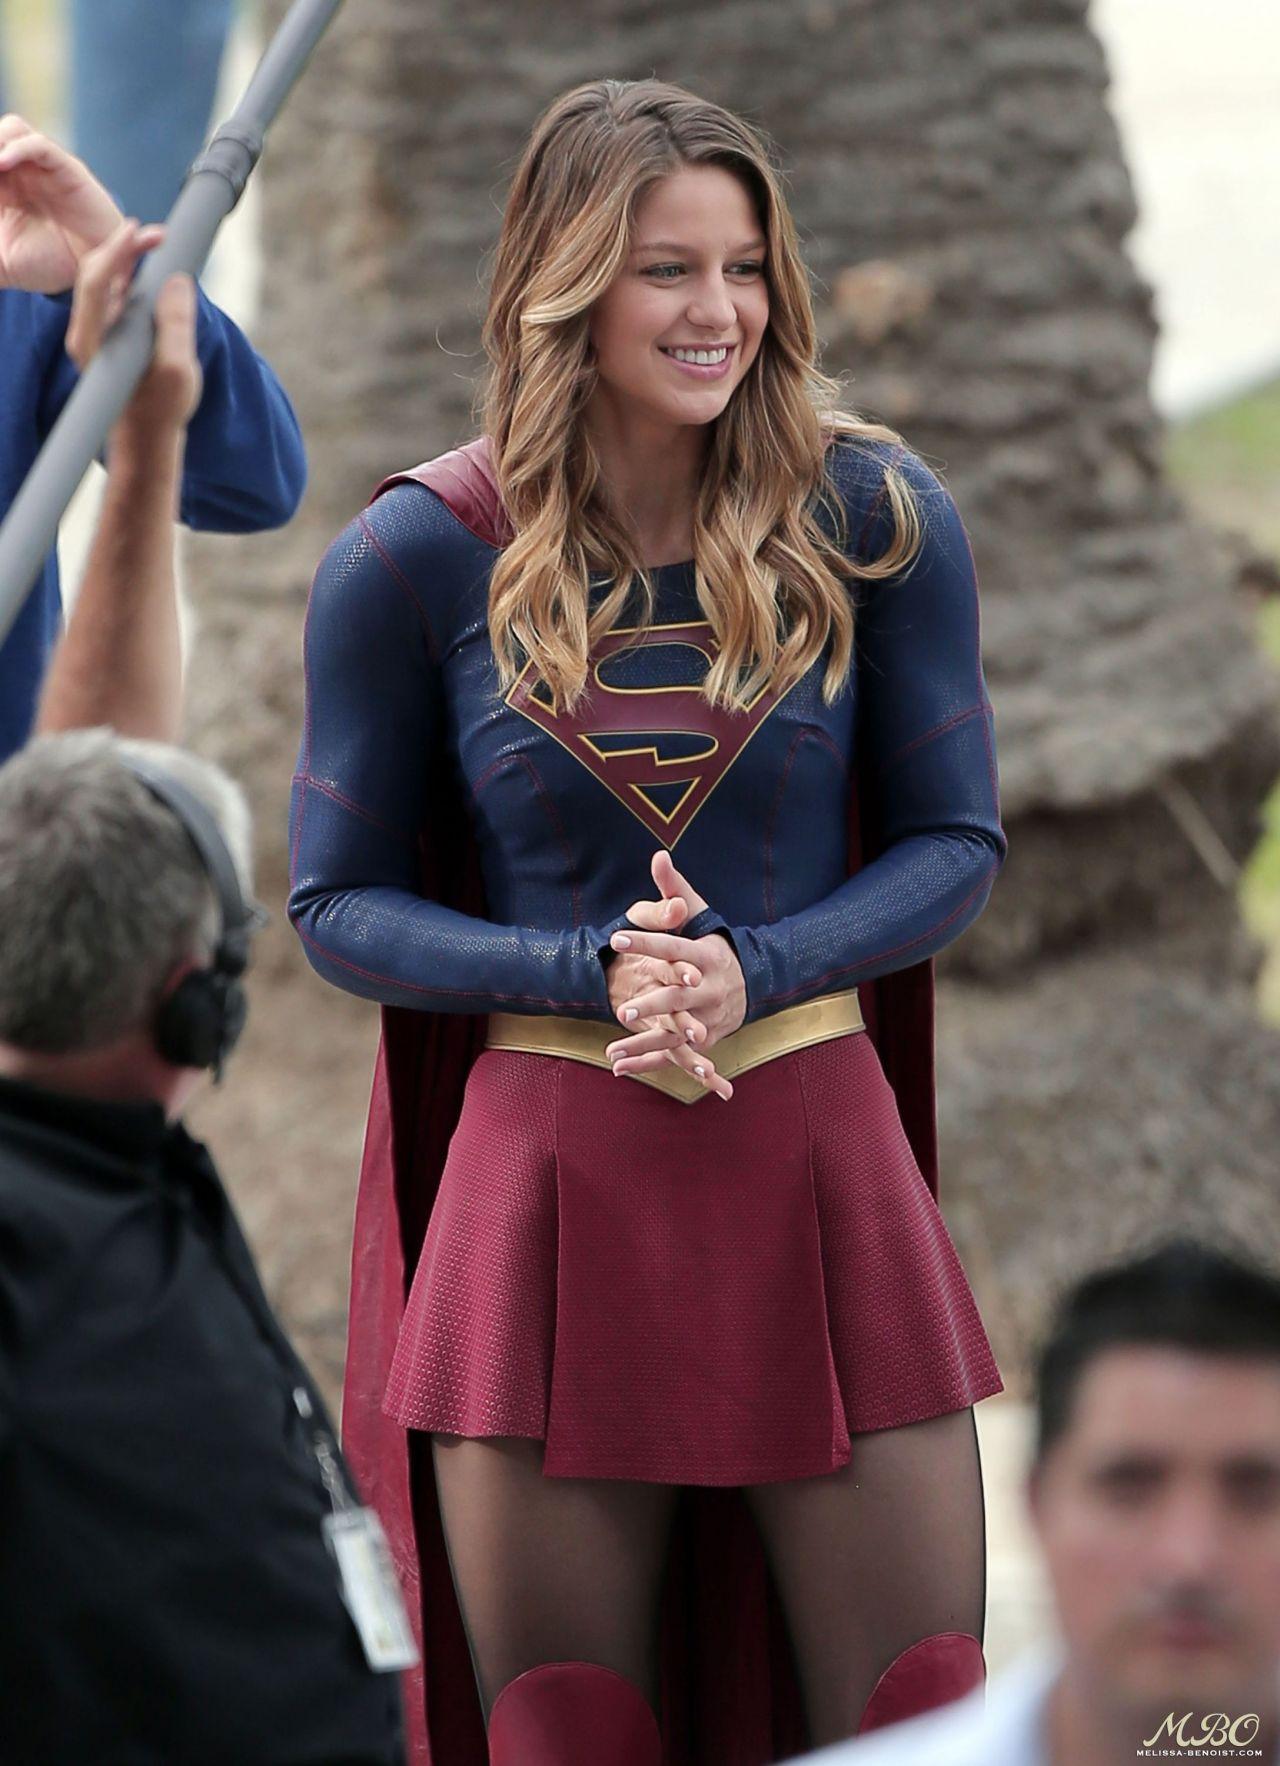 image Supergirl upskirt in the comic con